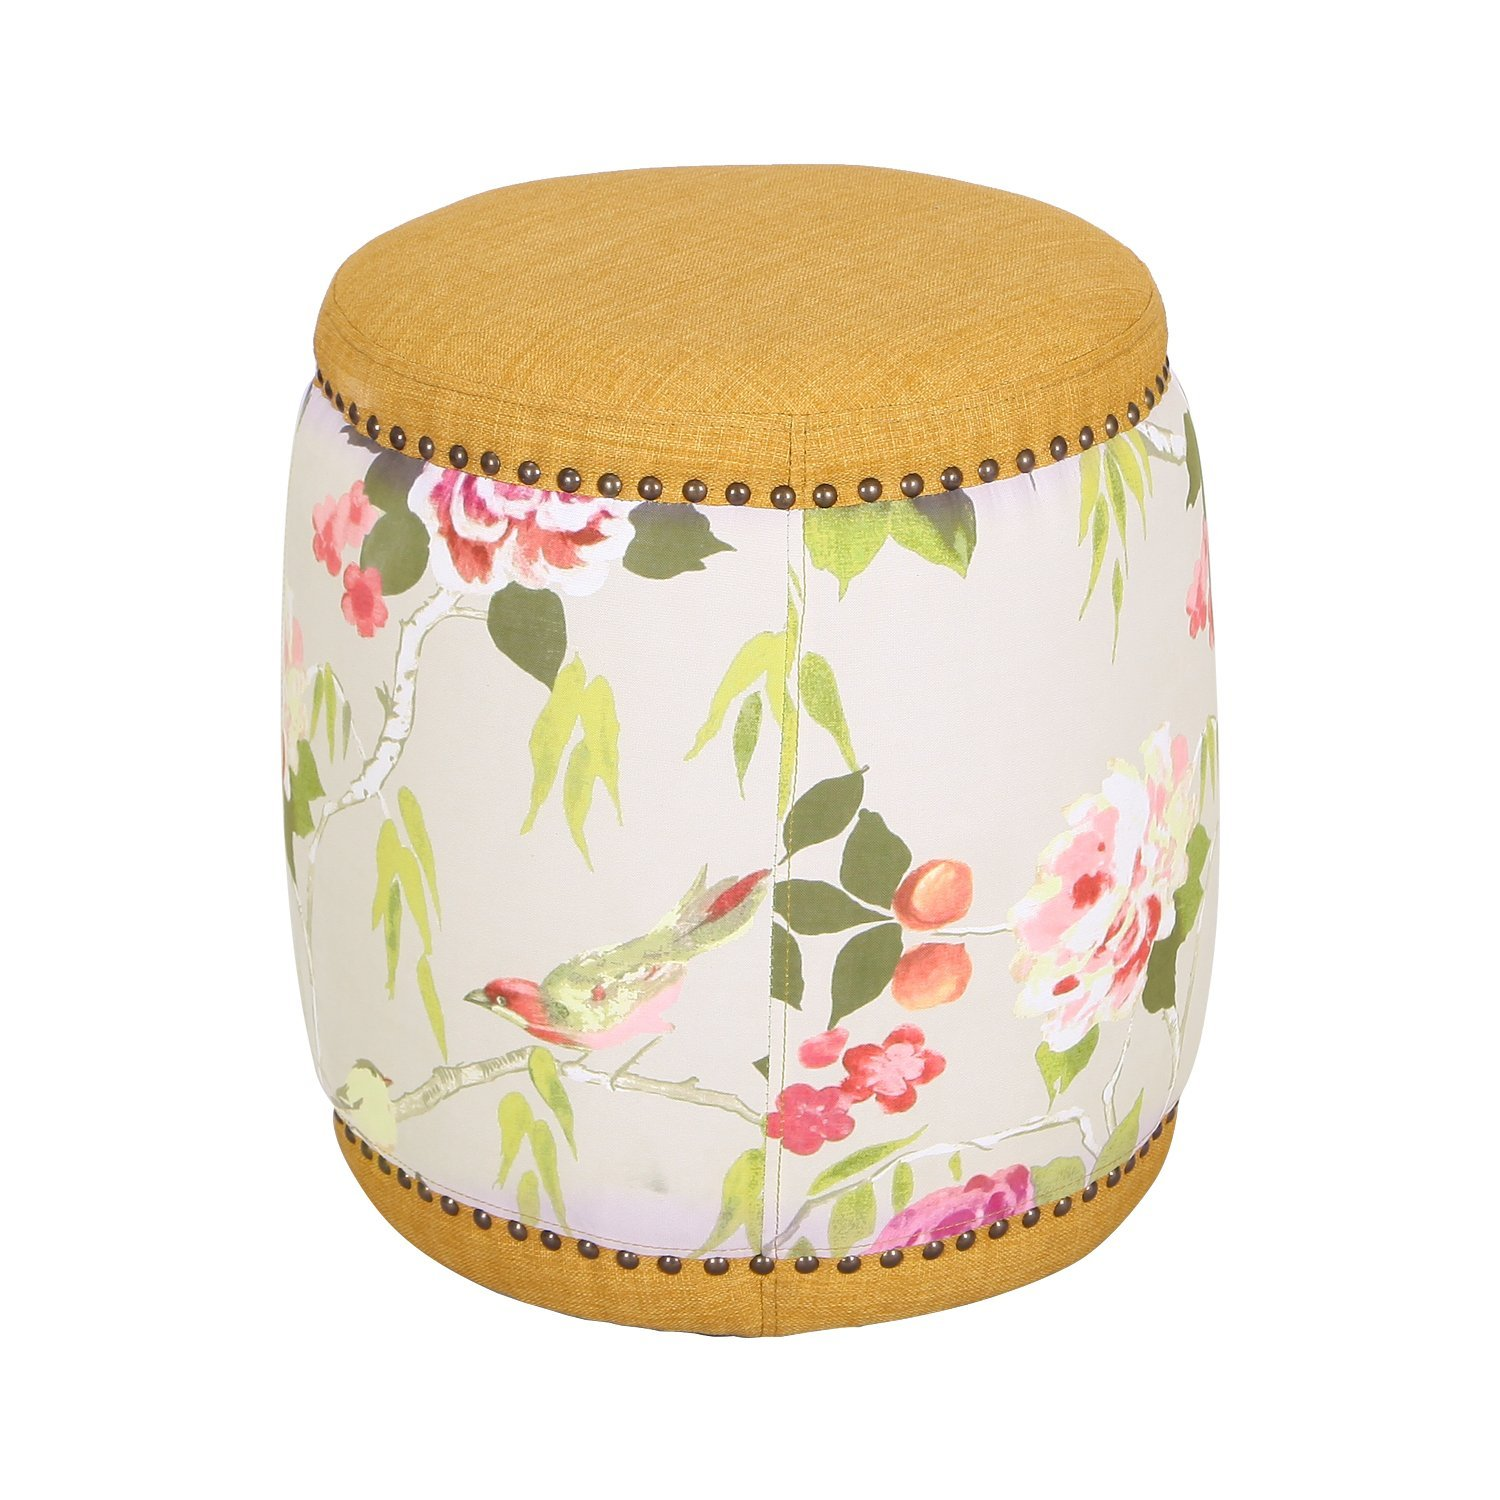 EDECO Fabric Drum Ottoman Chair Footstools Foot Stool Rest With Flower Pattern (Yellow)